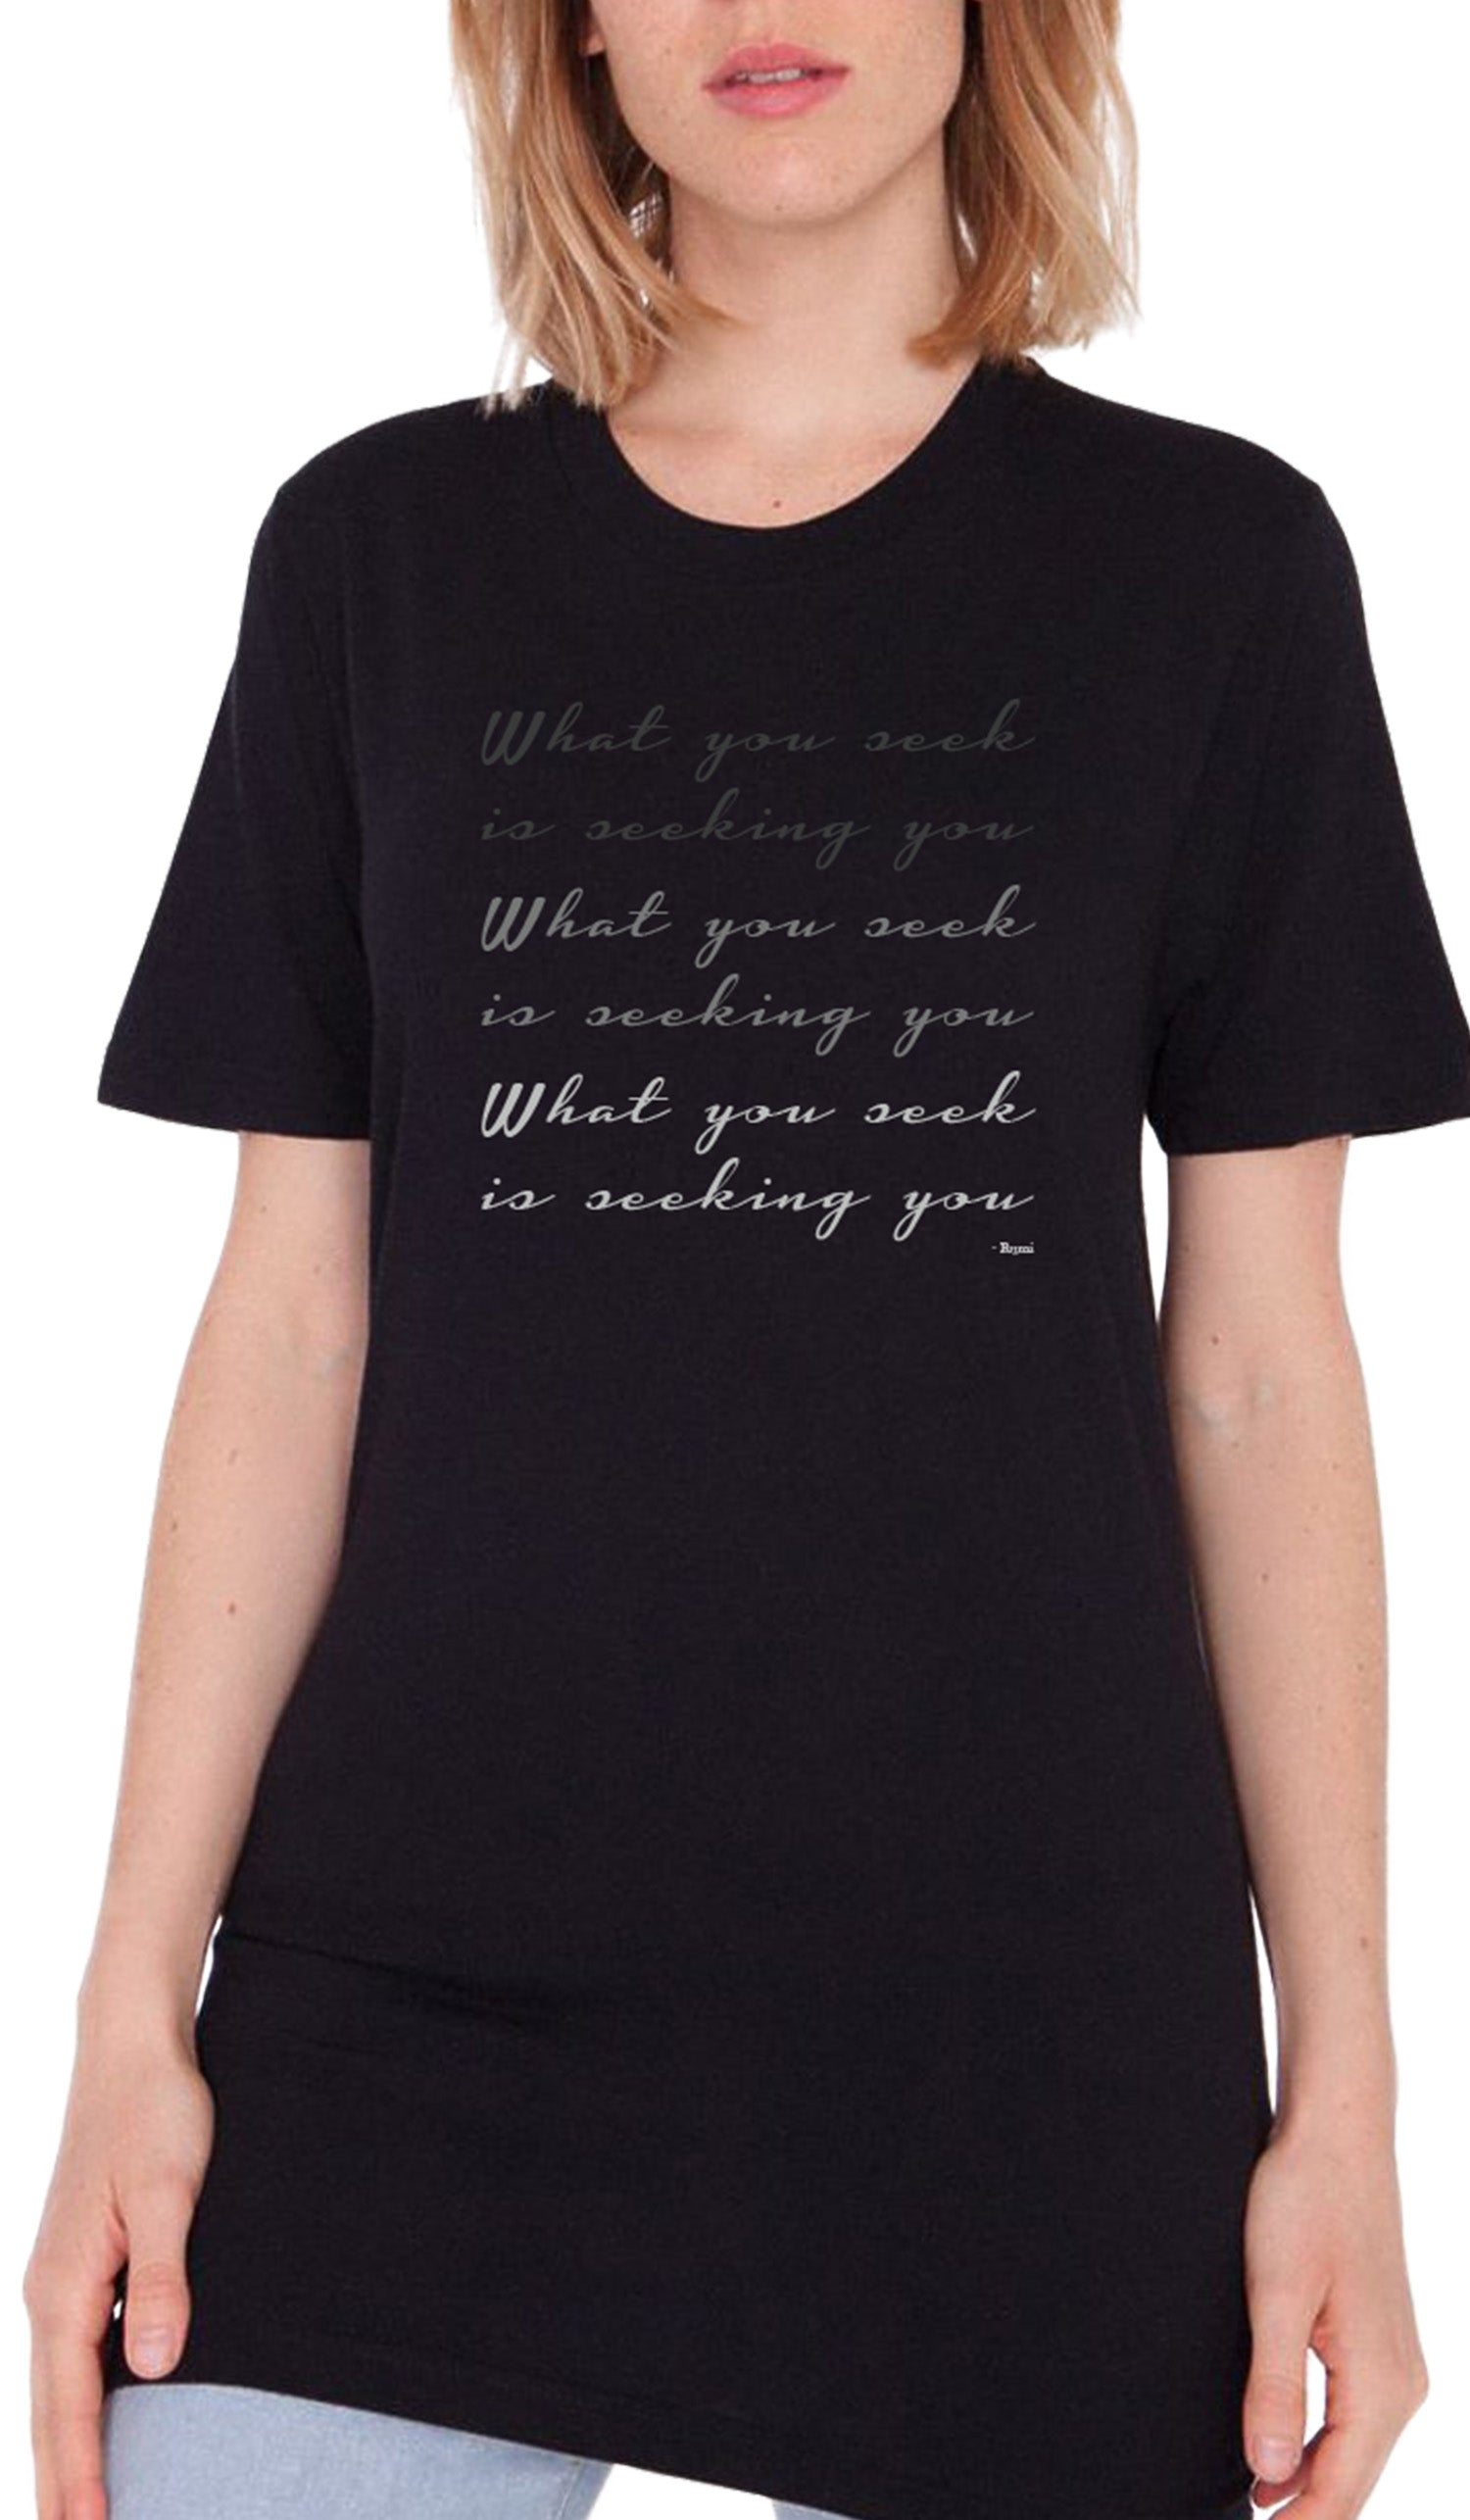 Rumi Quotes Fine Short Sleeve Unisex T Shirt - Seek - Black